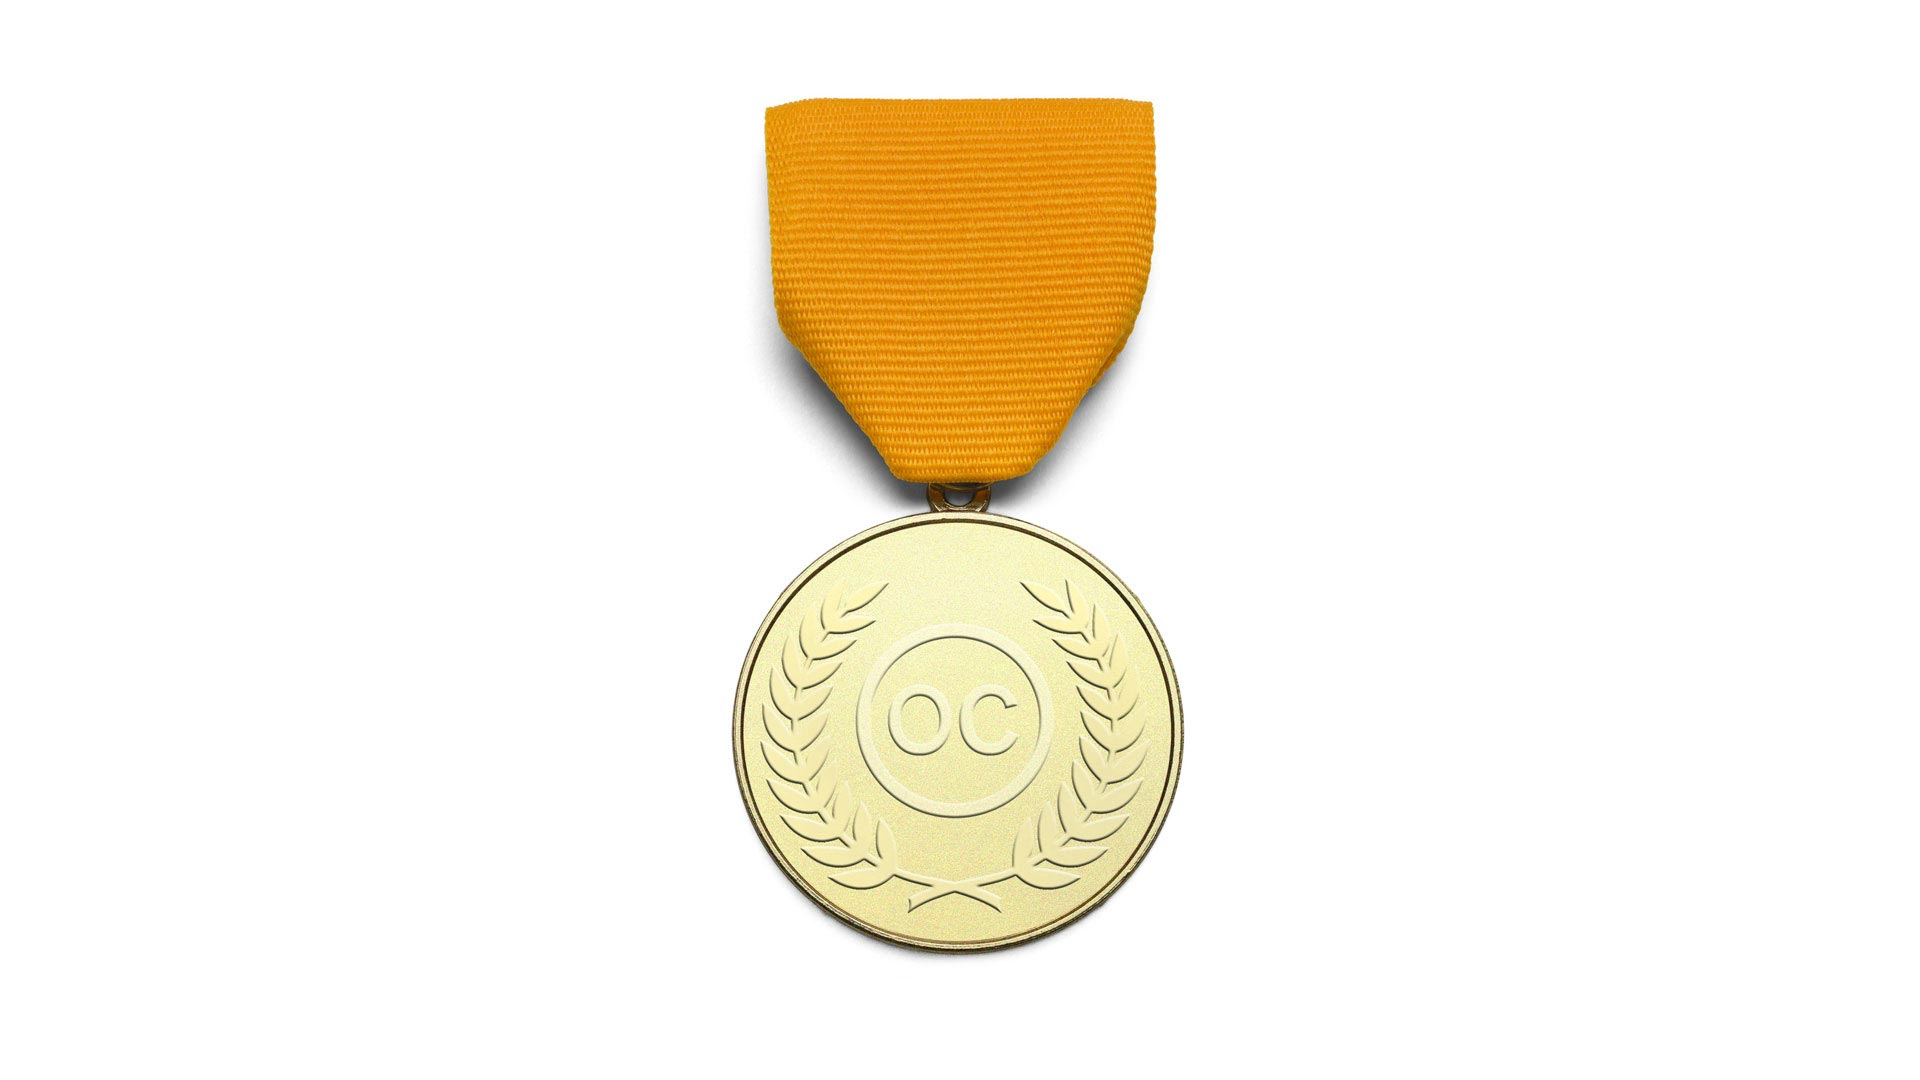 A gold medal, representing the prizes and awards that Orange Council has received in prestigious competitions.